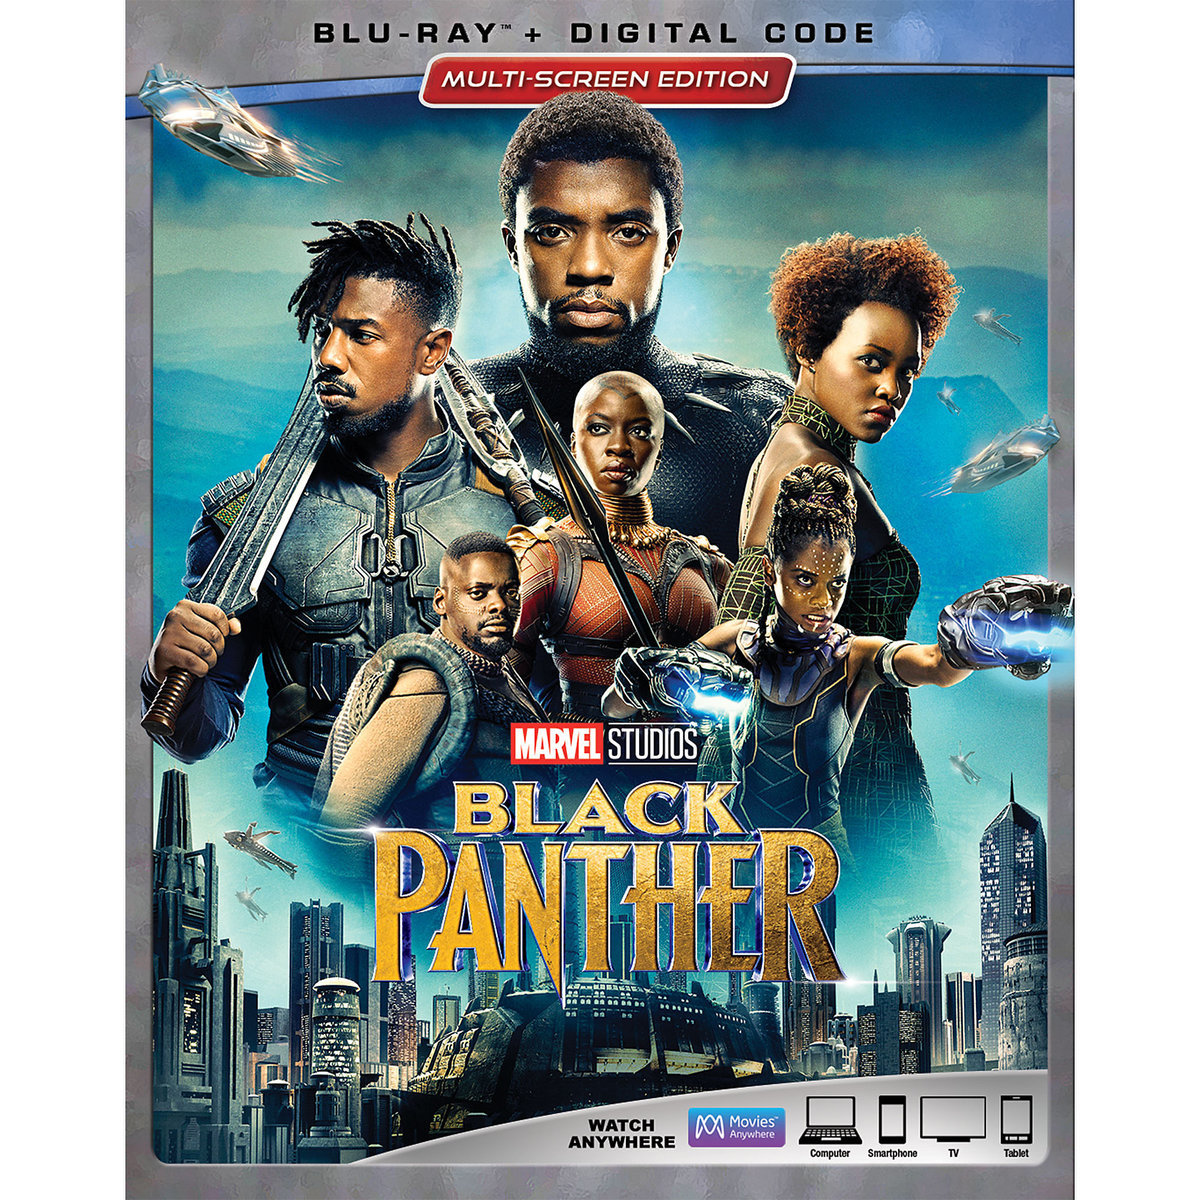 Black Panther DVD and Blu-ray combo